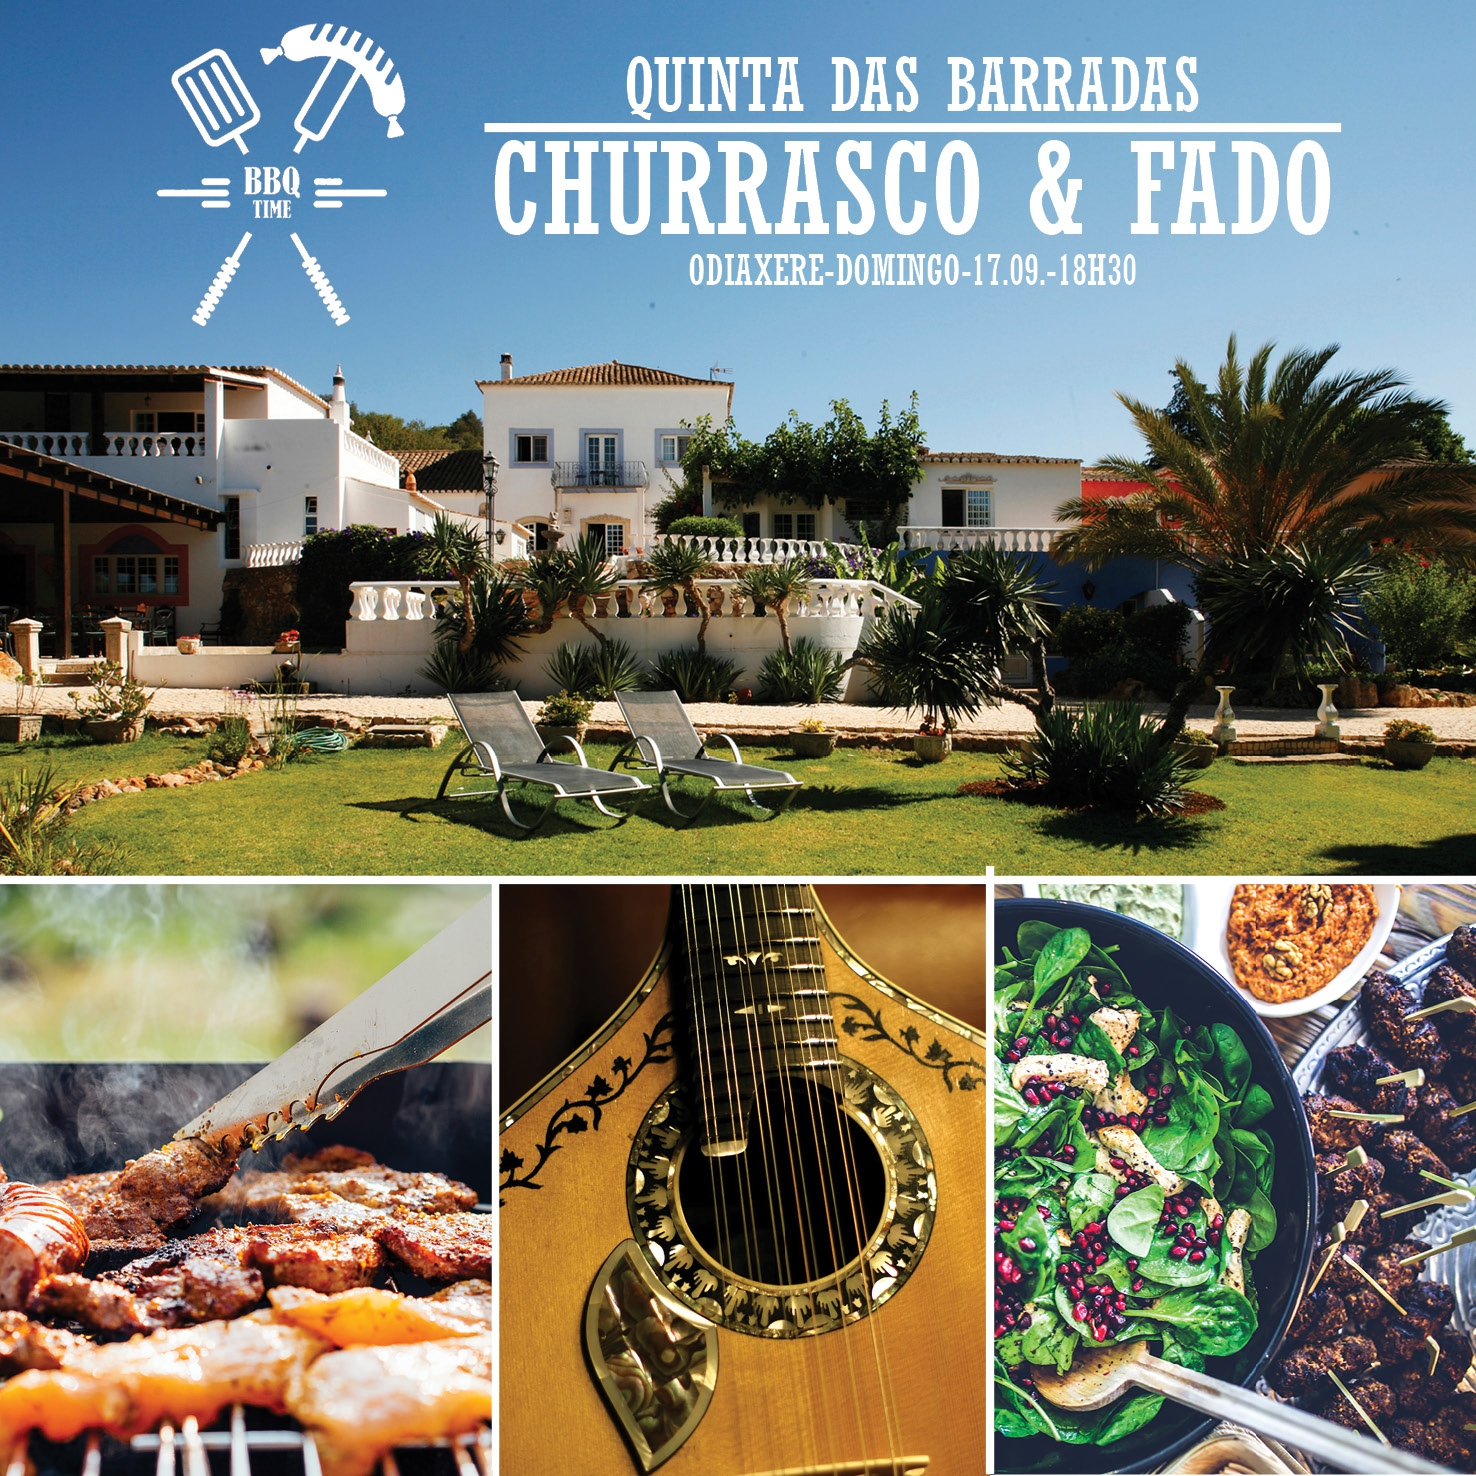 Traditional Portuguese Churrasco Sunday Dinner with Fado Live Music